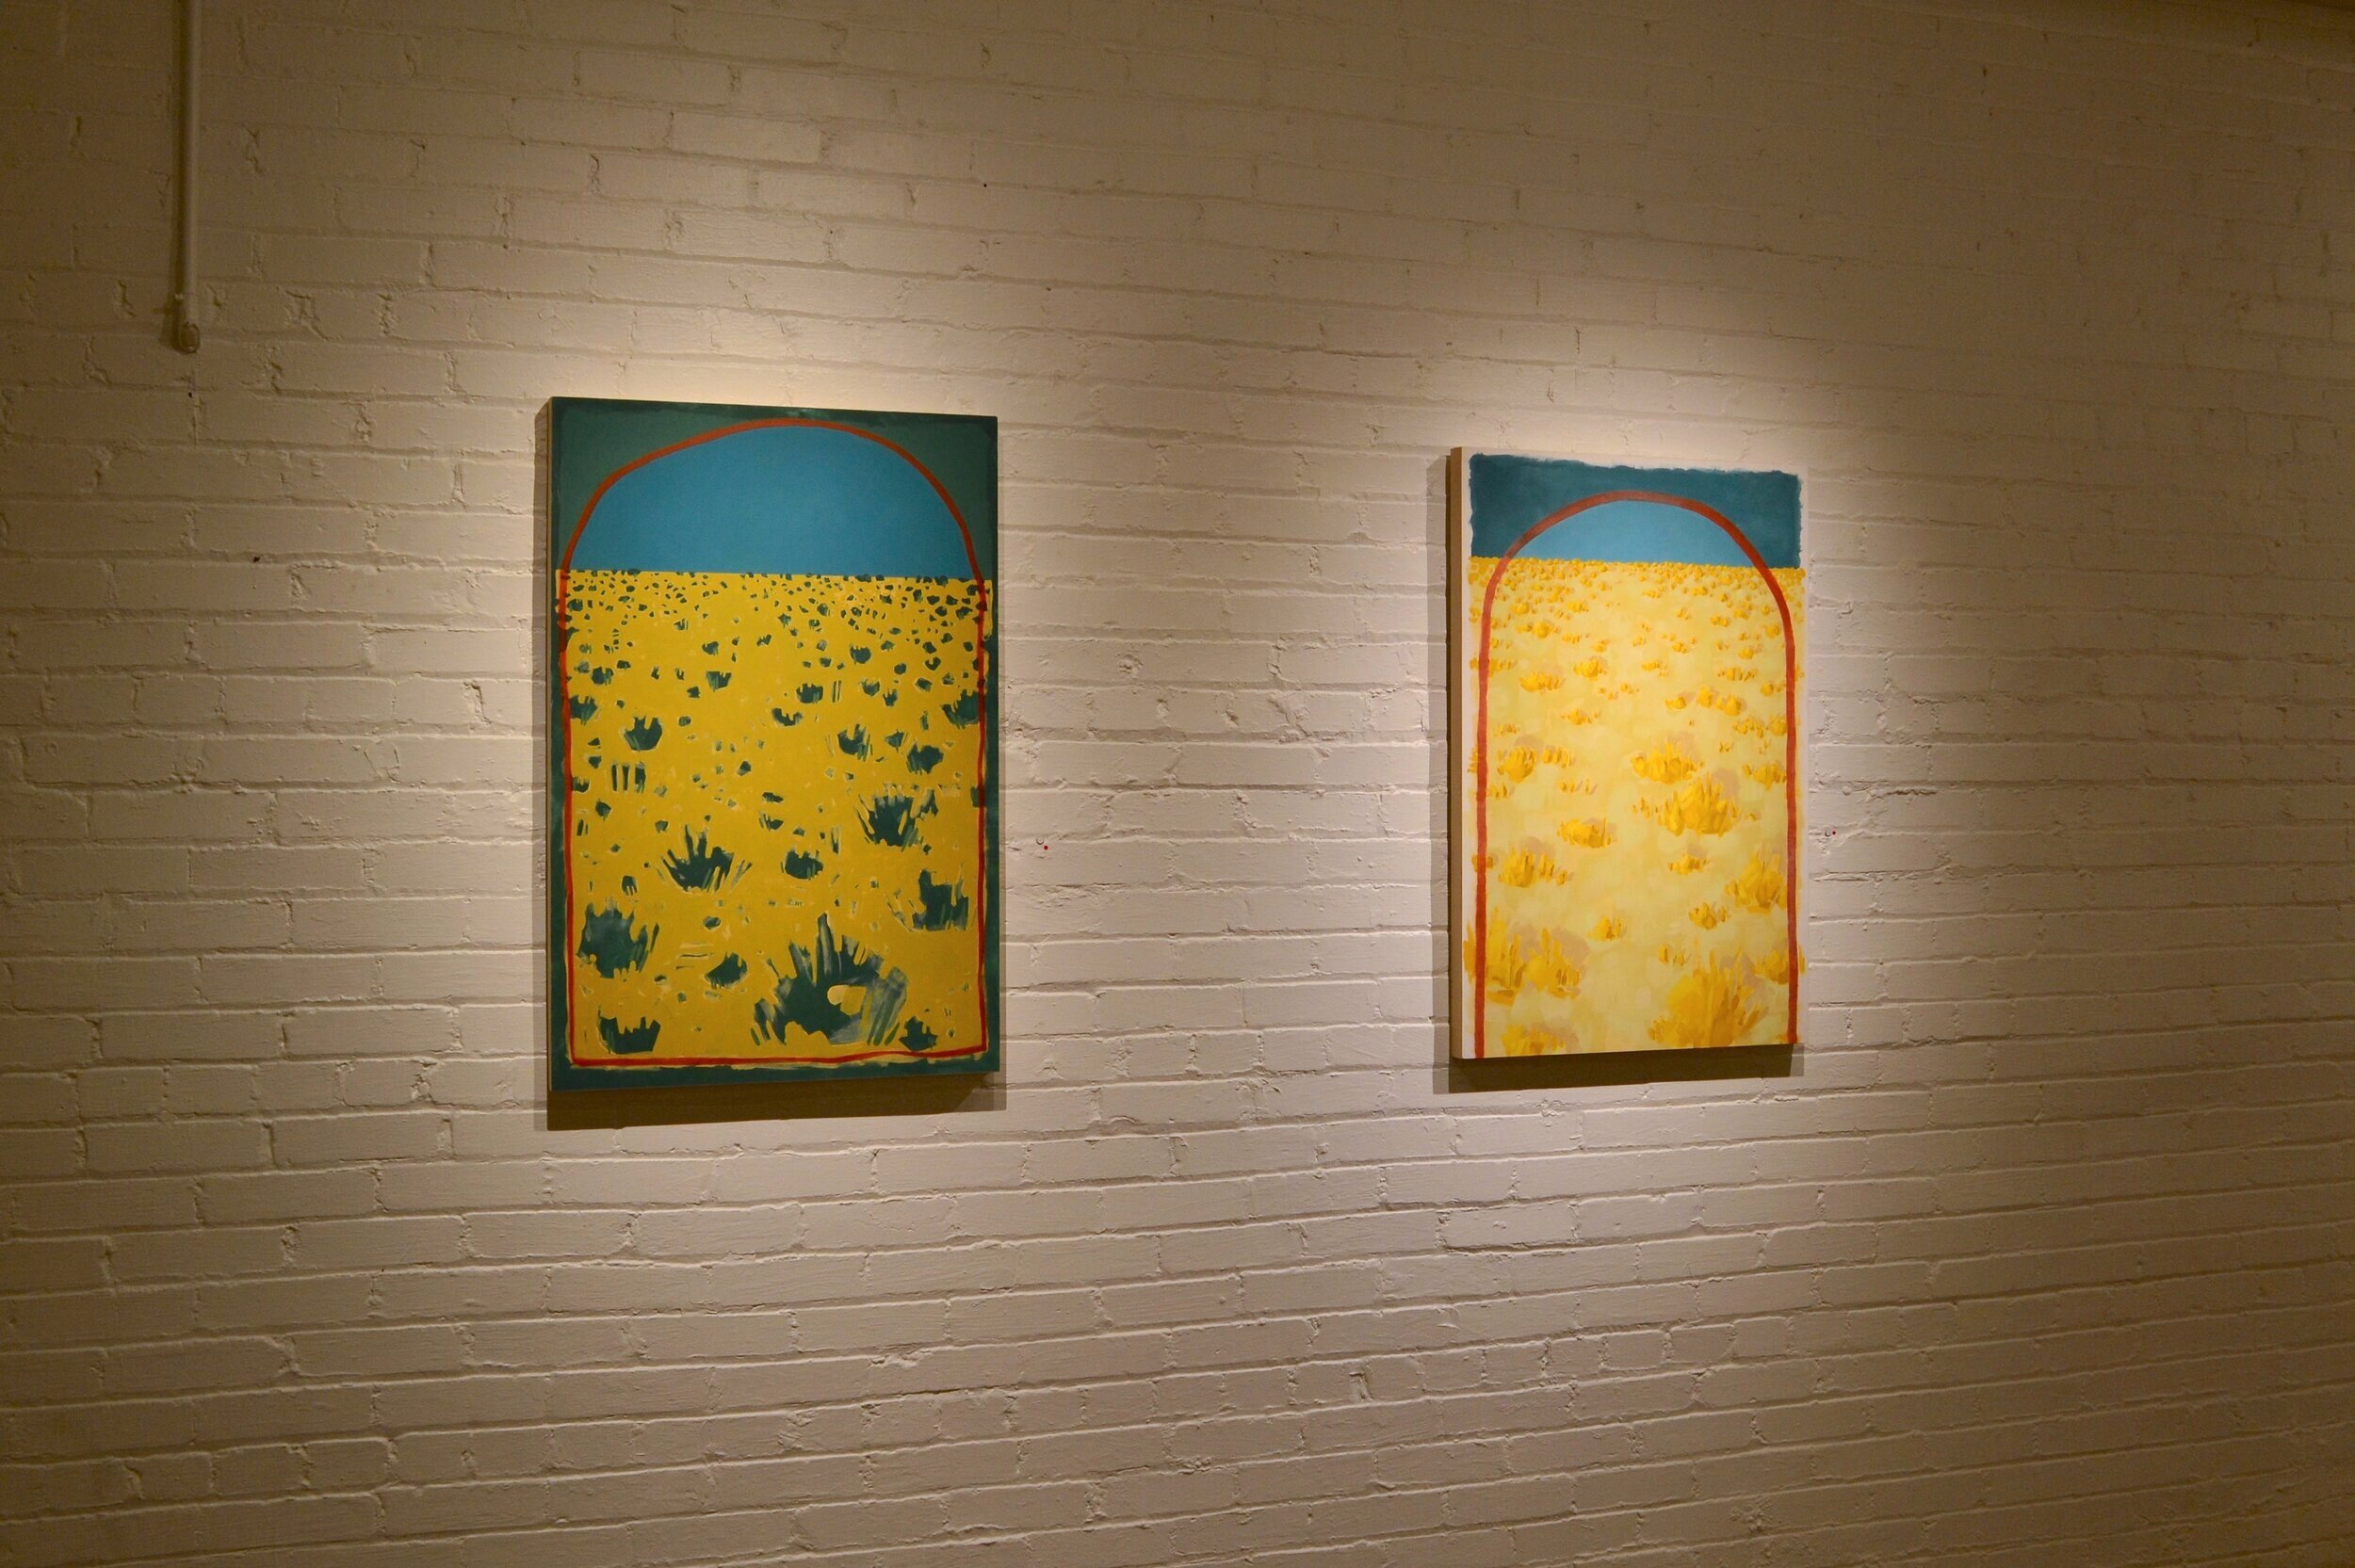 Desert: Over and Over (Artspace 111)